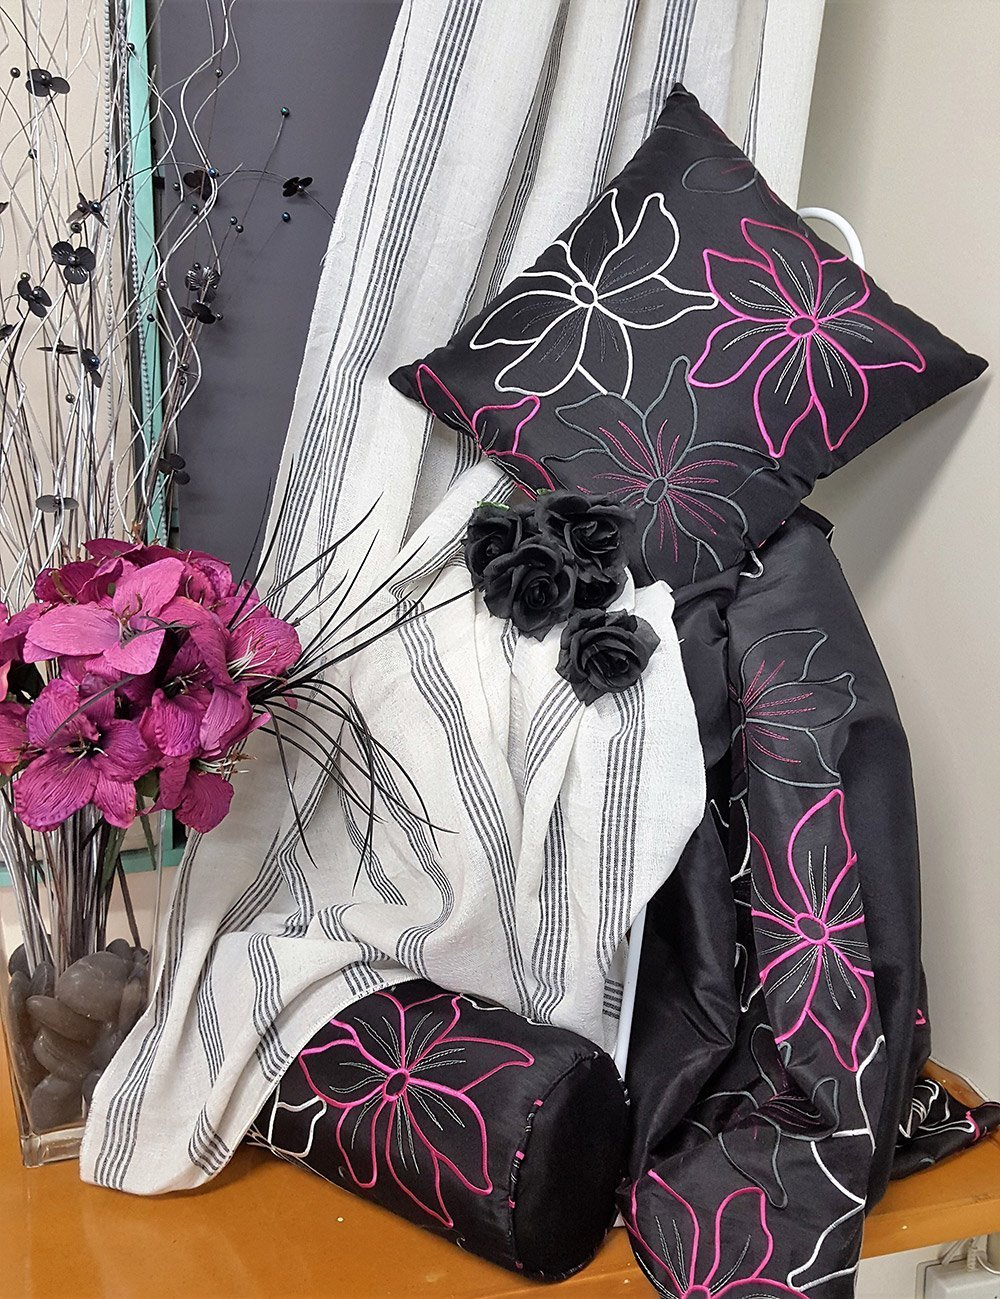 View of quality cushion cover and curtains